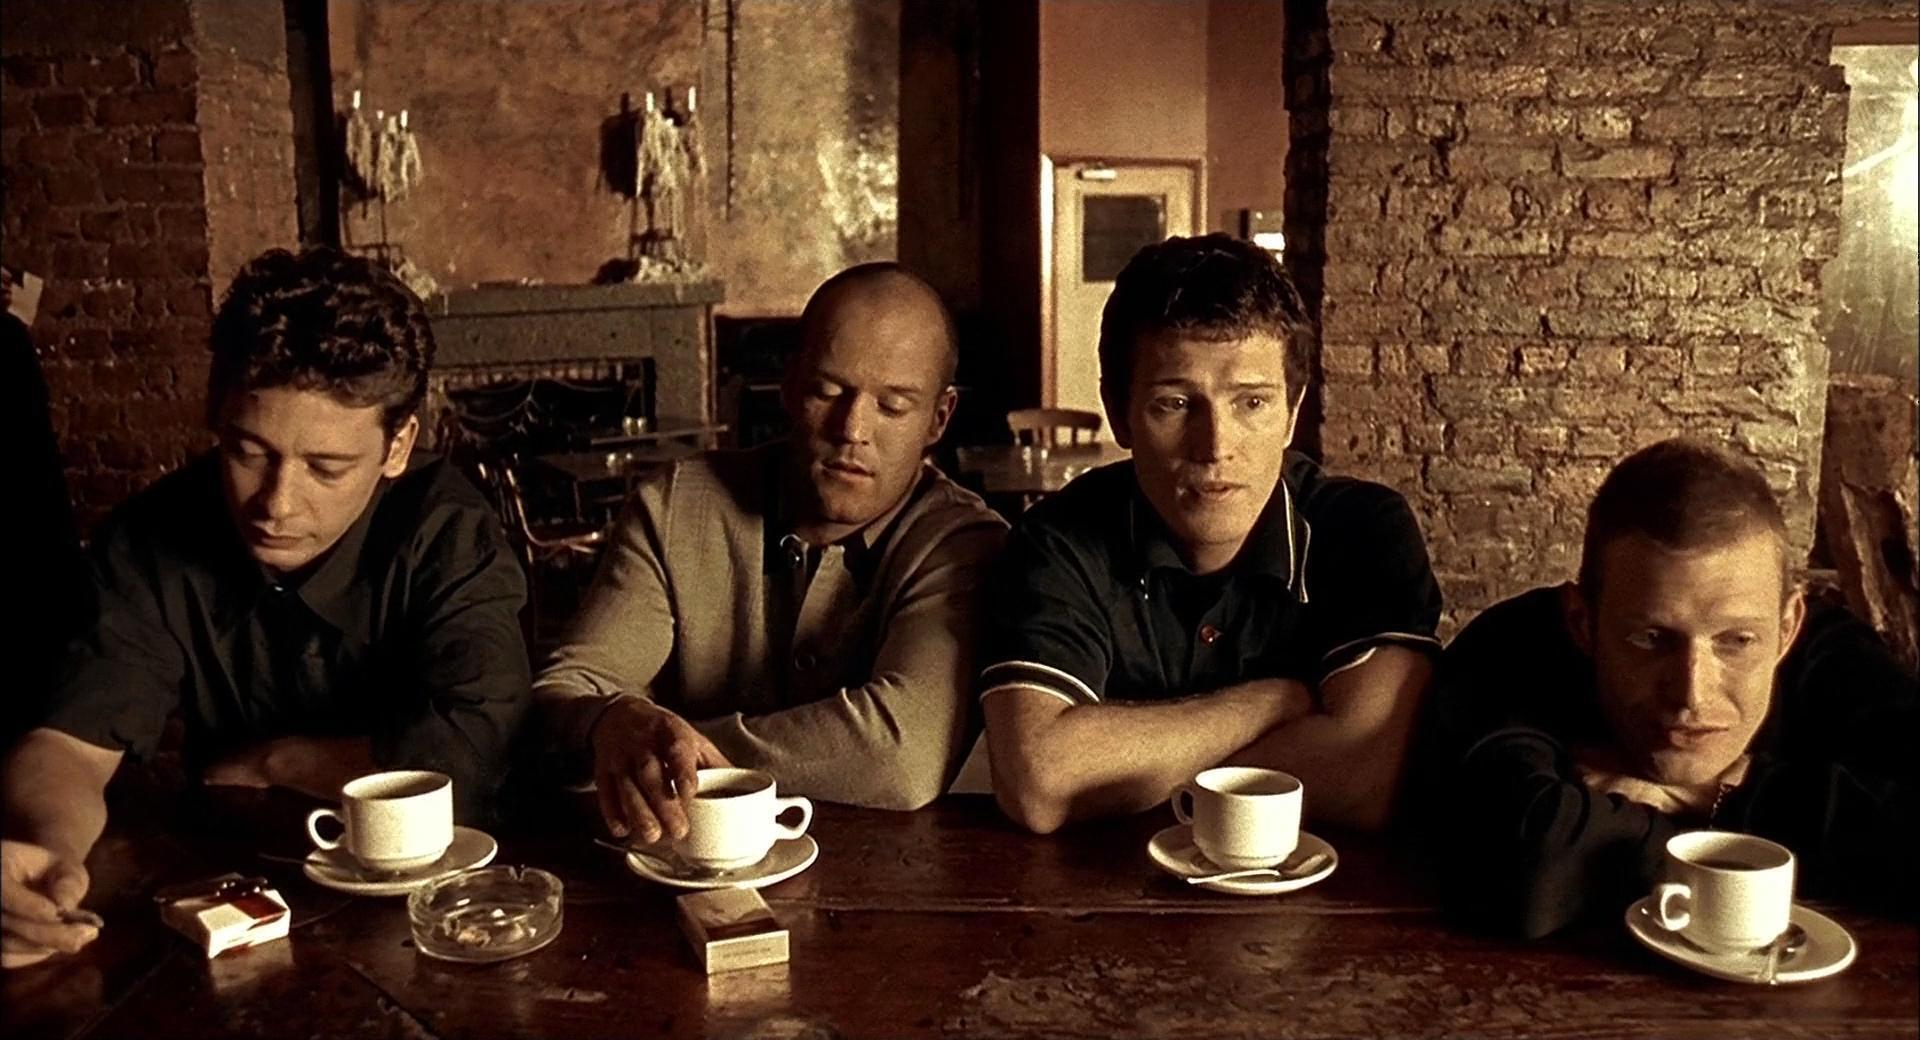 movies_lock__stock_and_two_smoking_barrels_are_drinking_coffee_054413__4efg